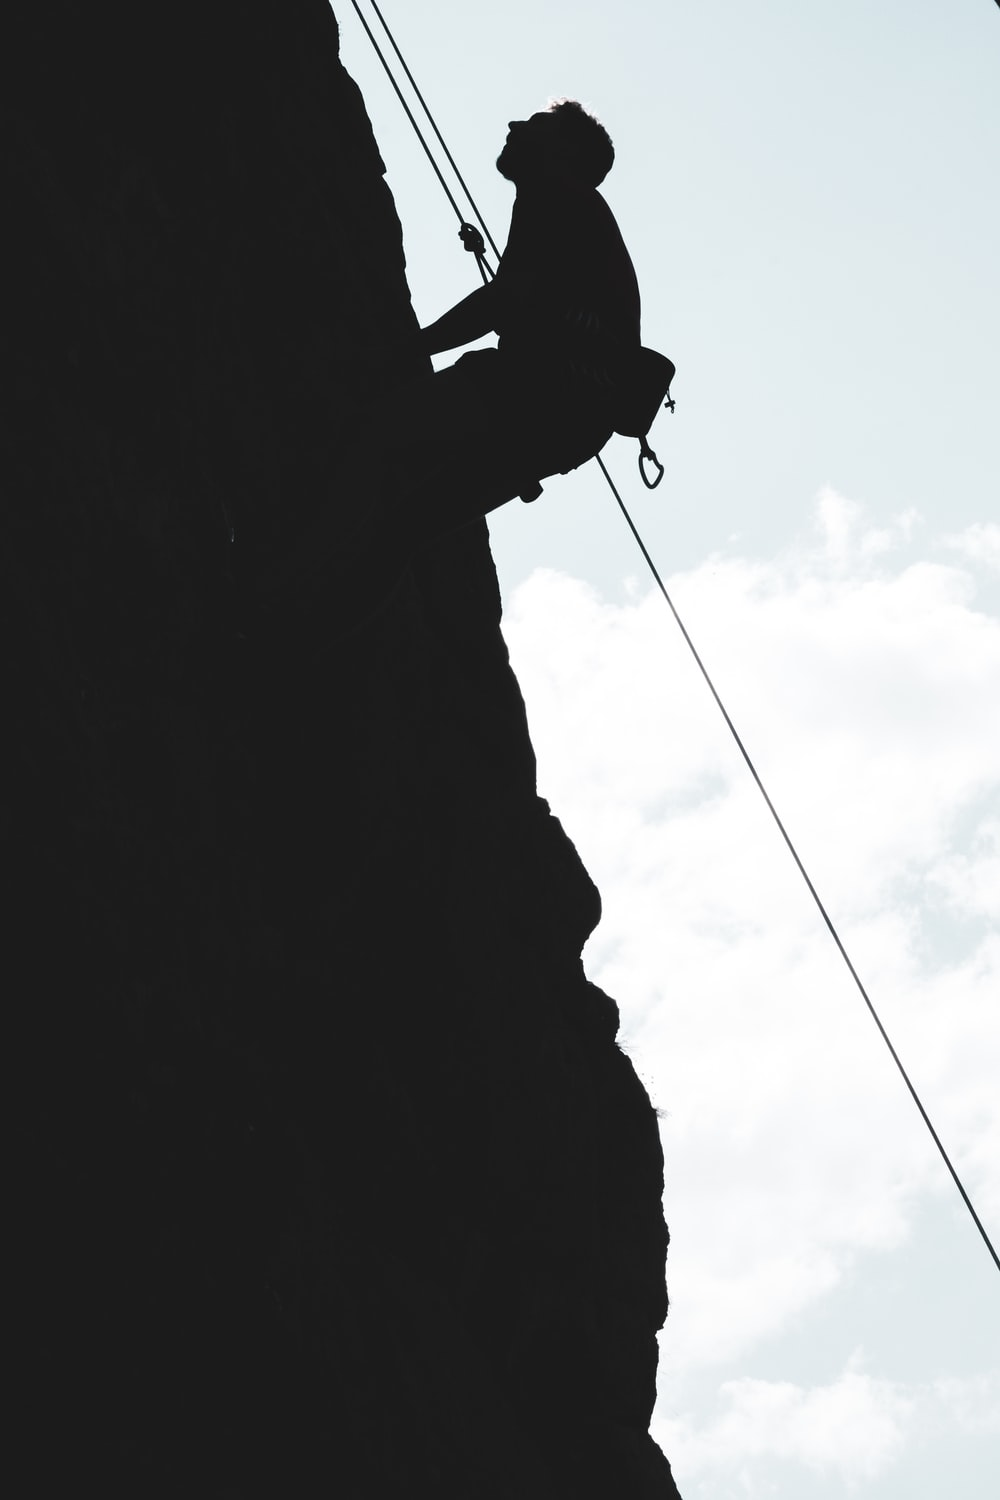 silhouette of man climbing on mountain during daytime